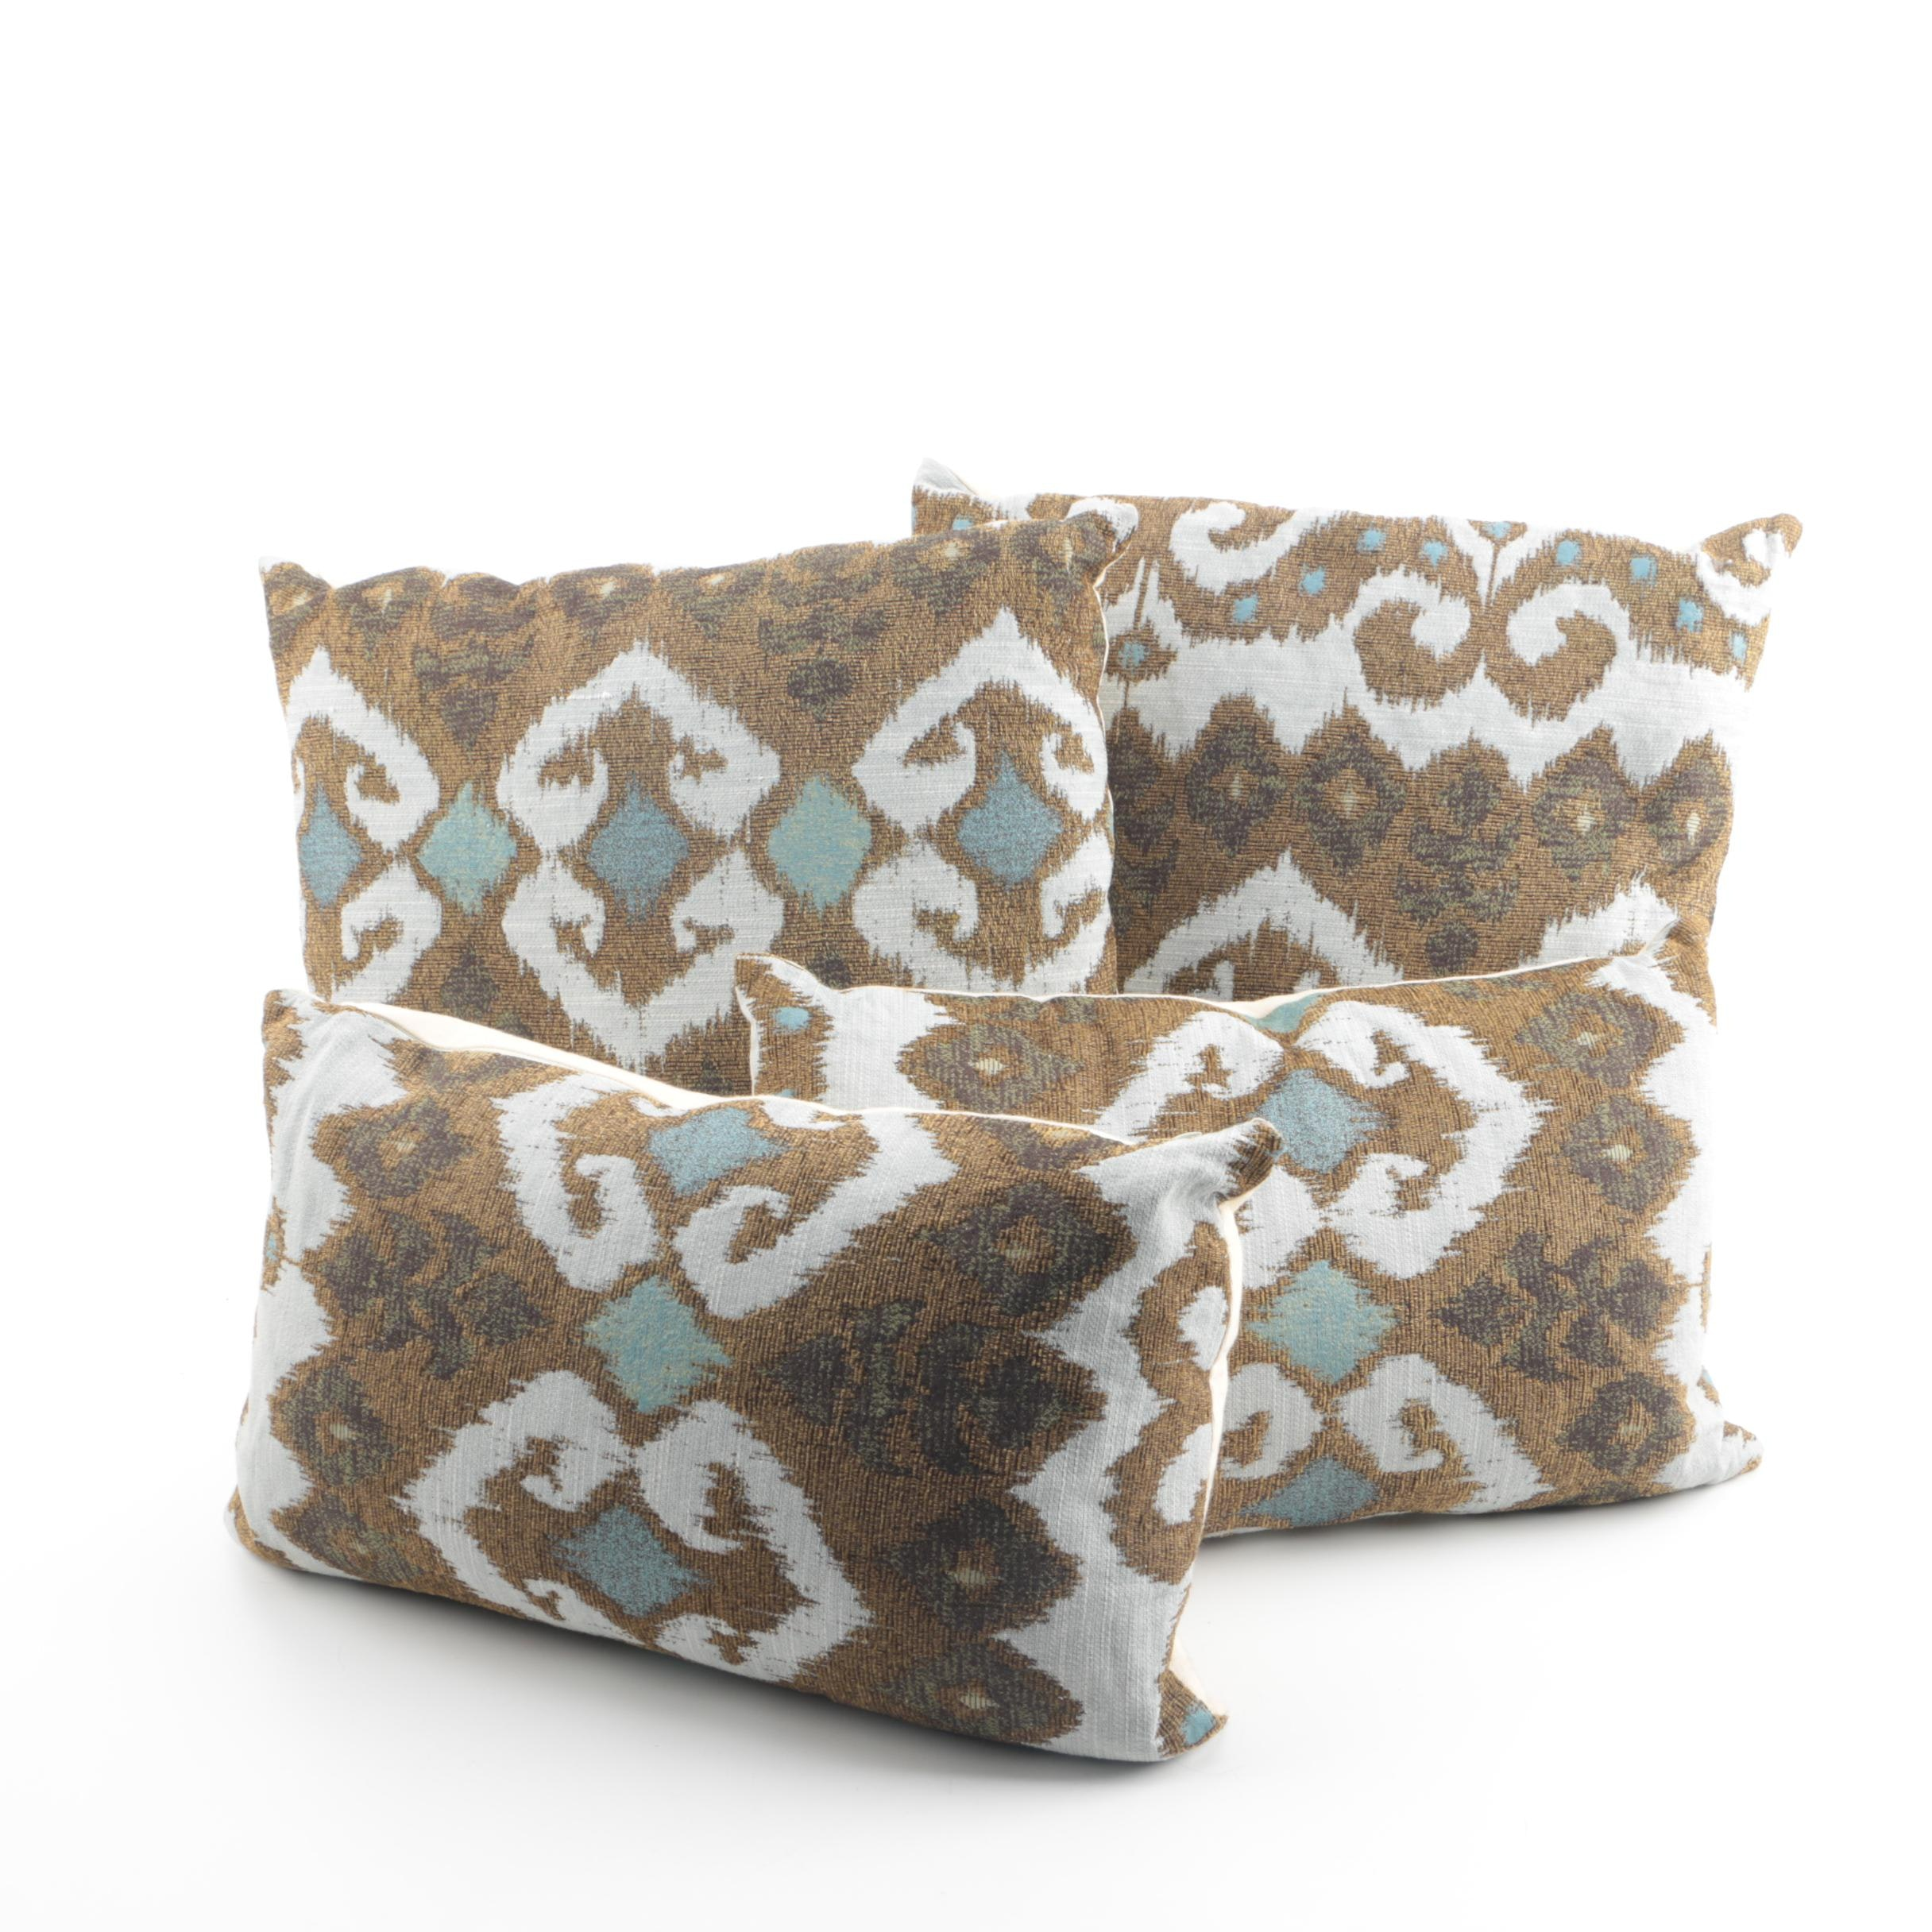 Contemporary Ikat-Style Accent Pillows